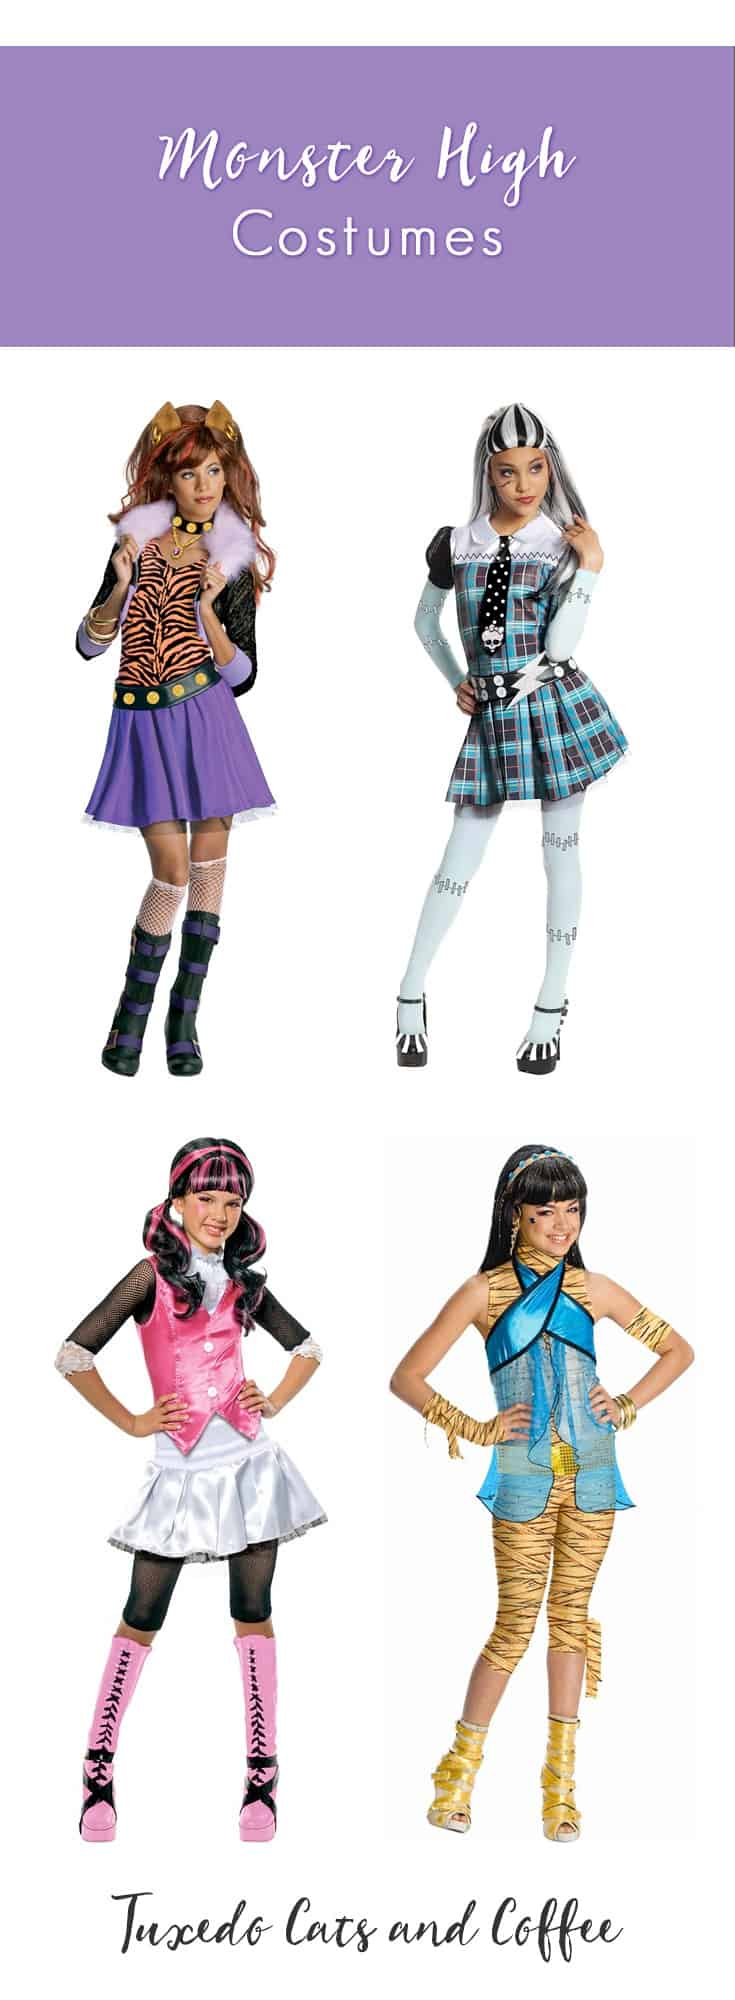 monster high costumes - tuxedo cats and coffee